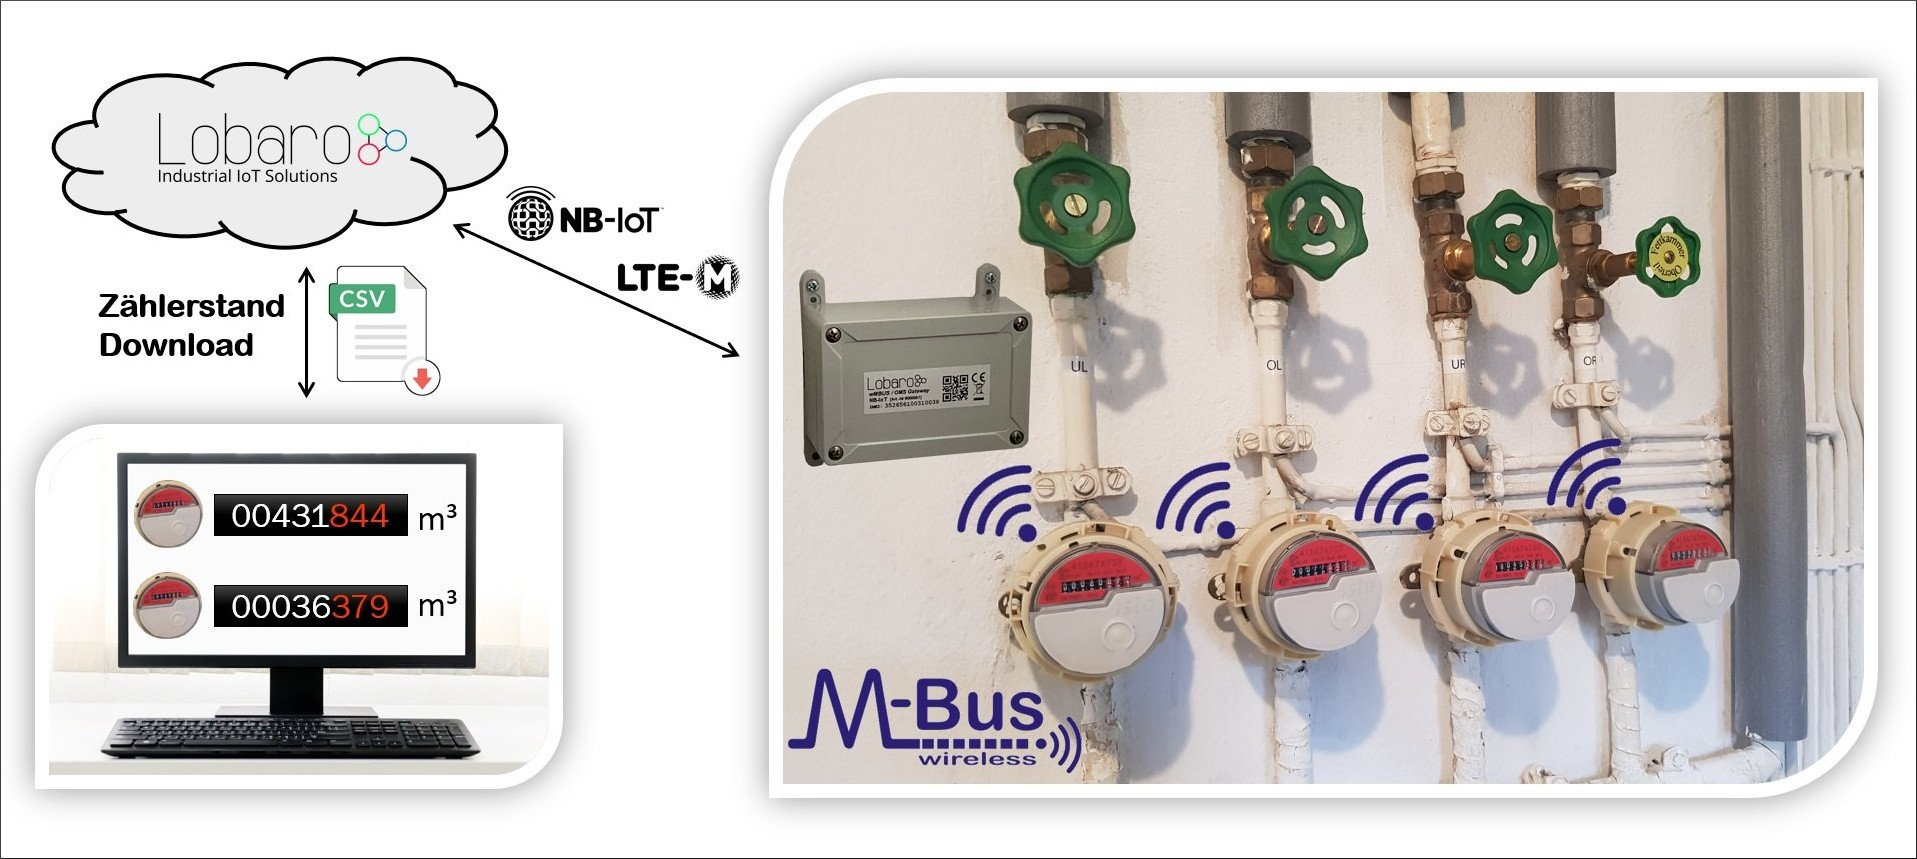 Narrowband IoT wireless M-Bus